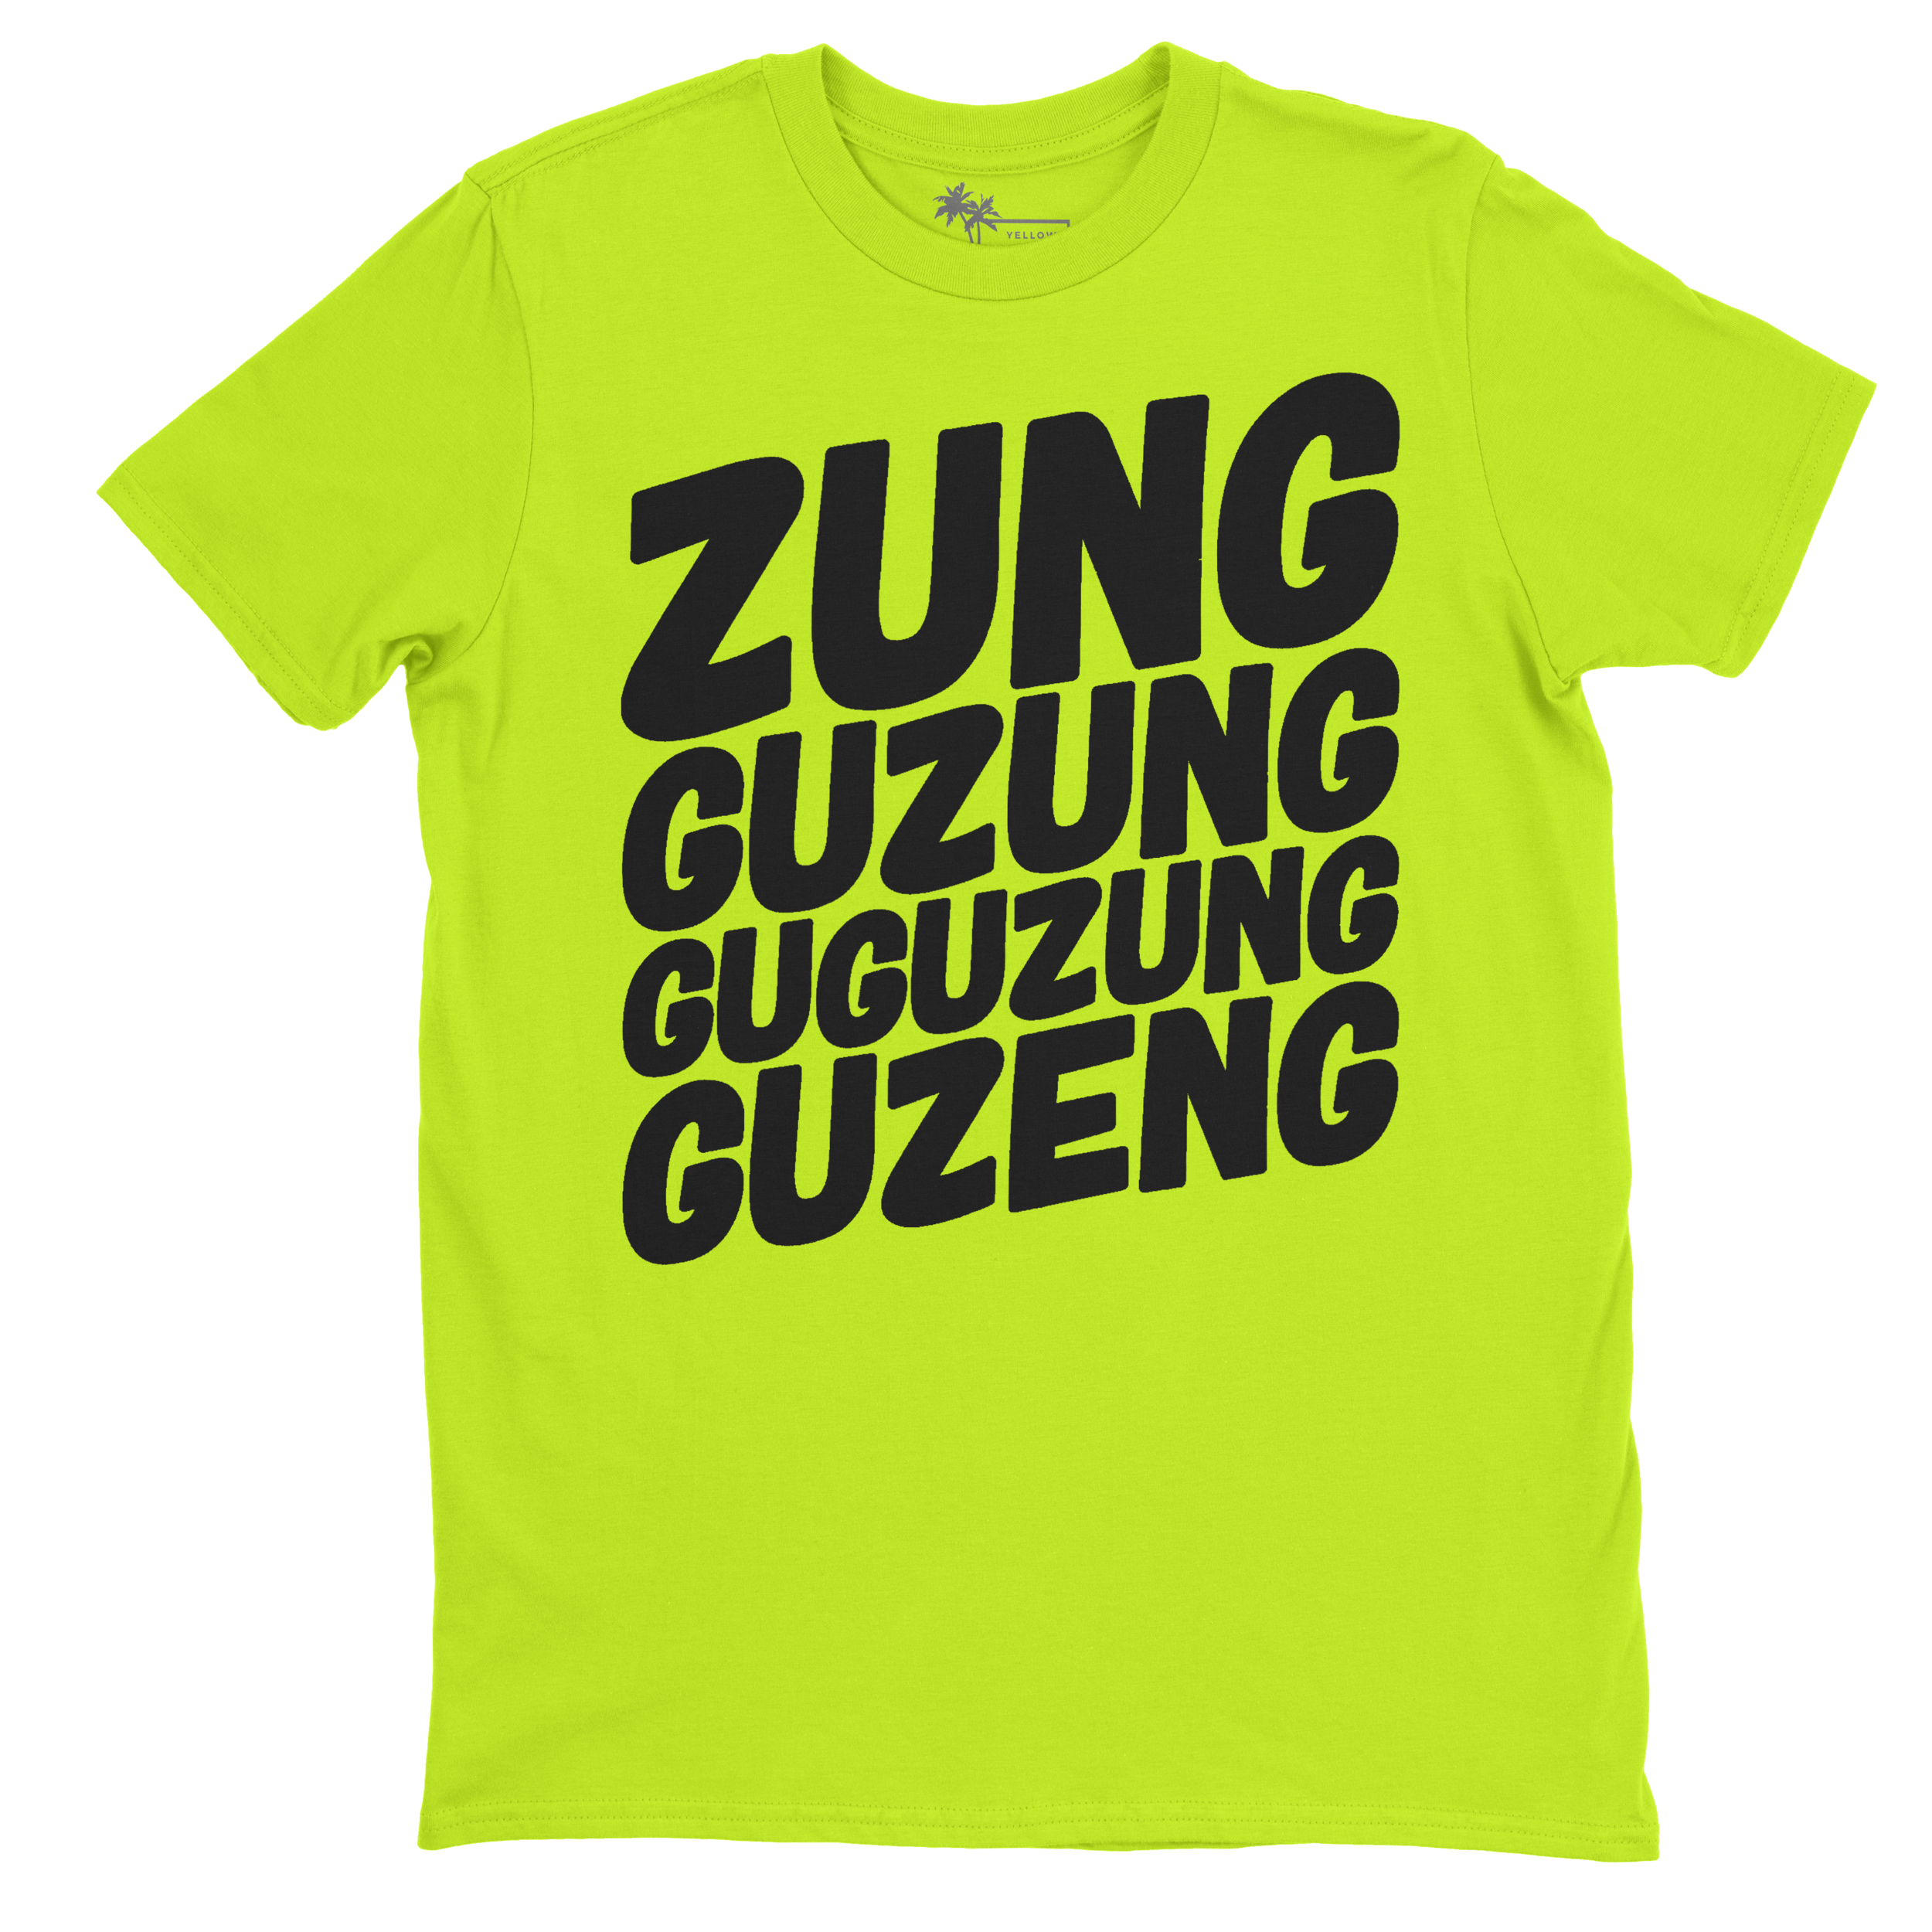 Zungguzung in Neon Yellow — King Yellowman